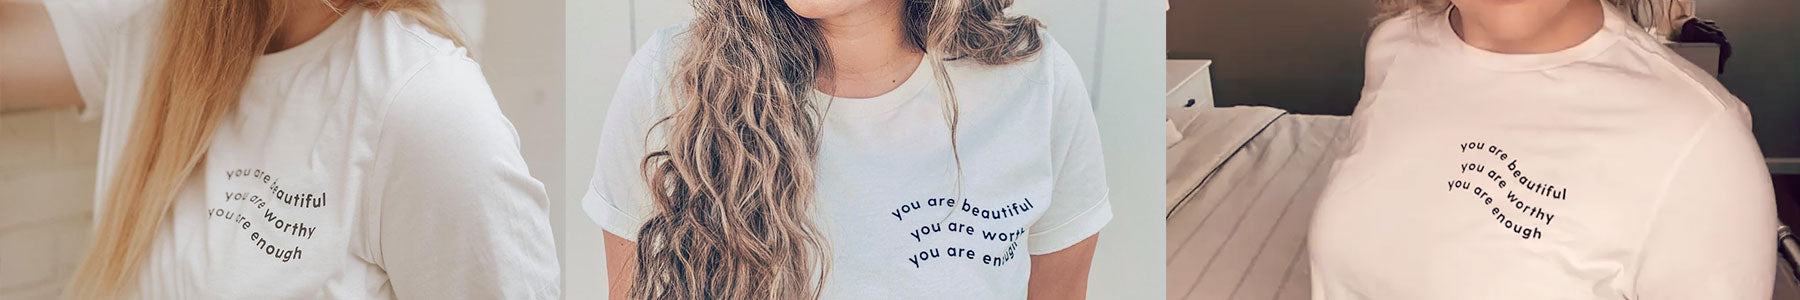 inspire collection graphic tees worth beautiful and enough